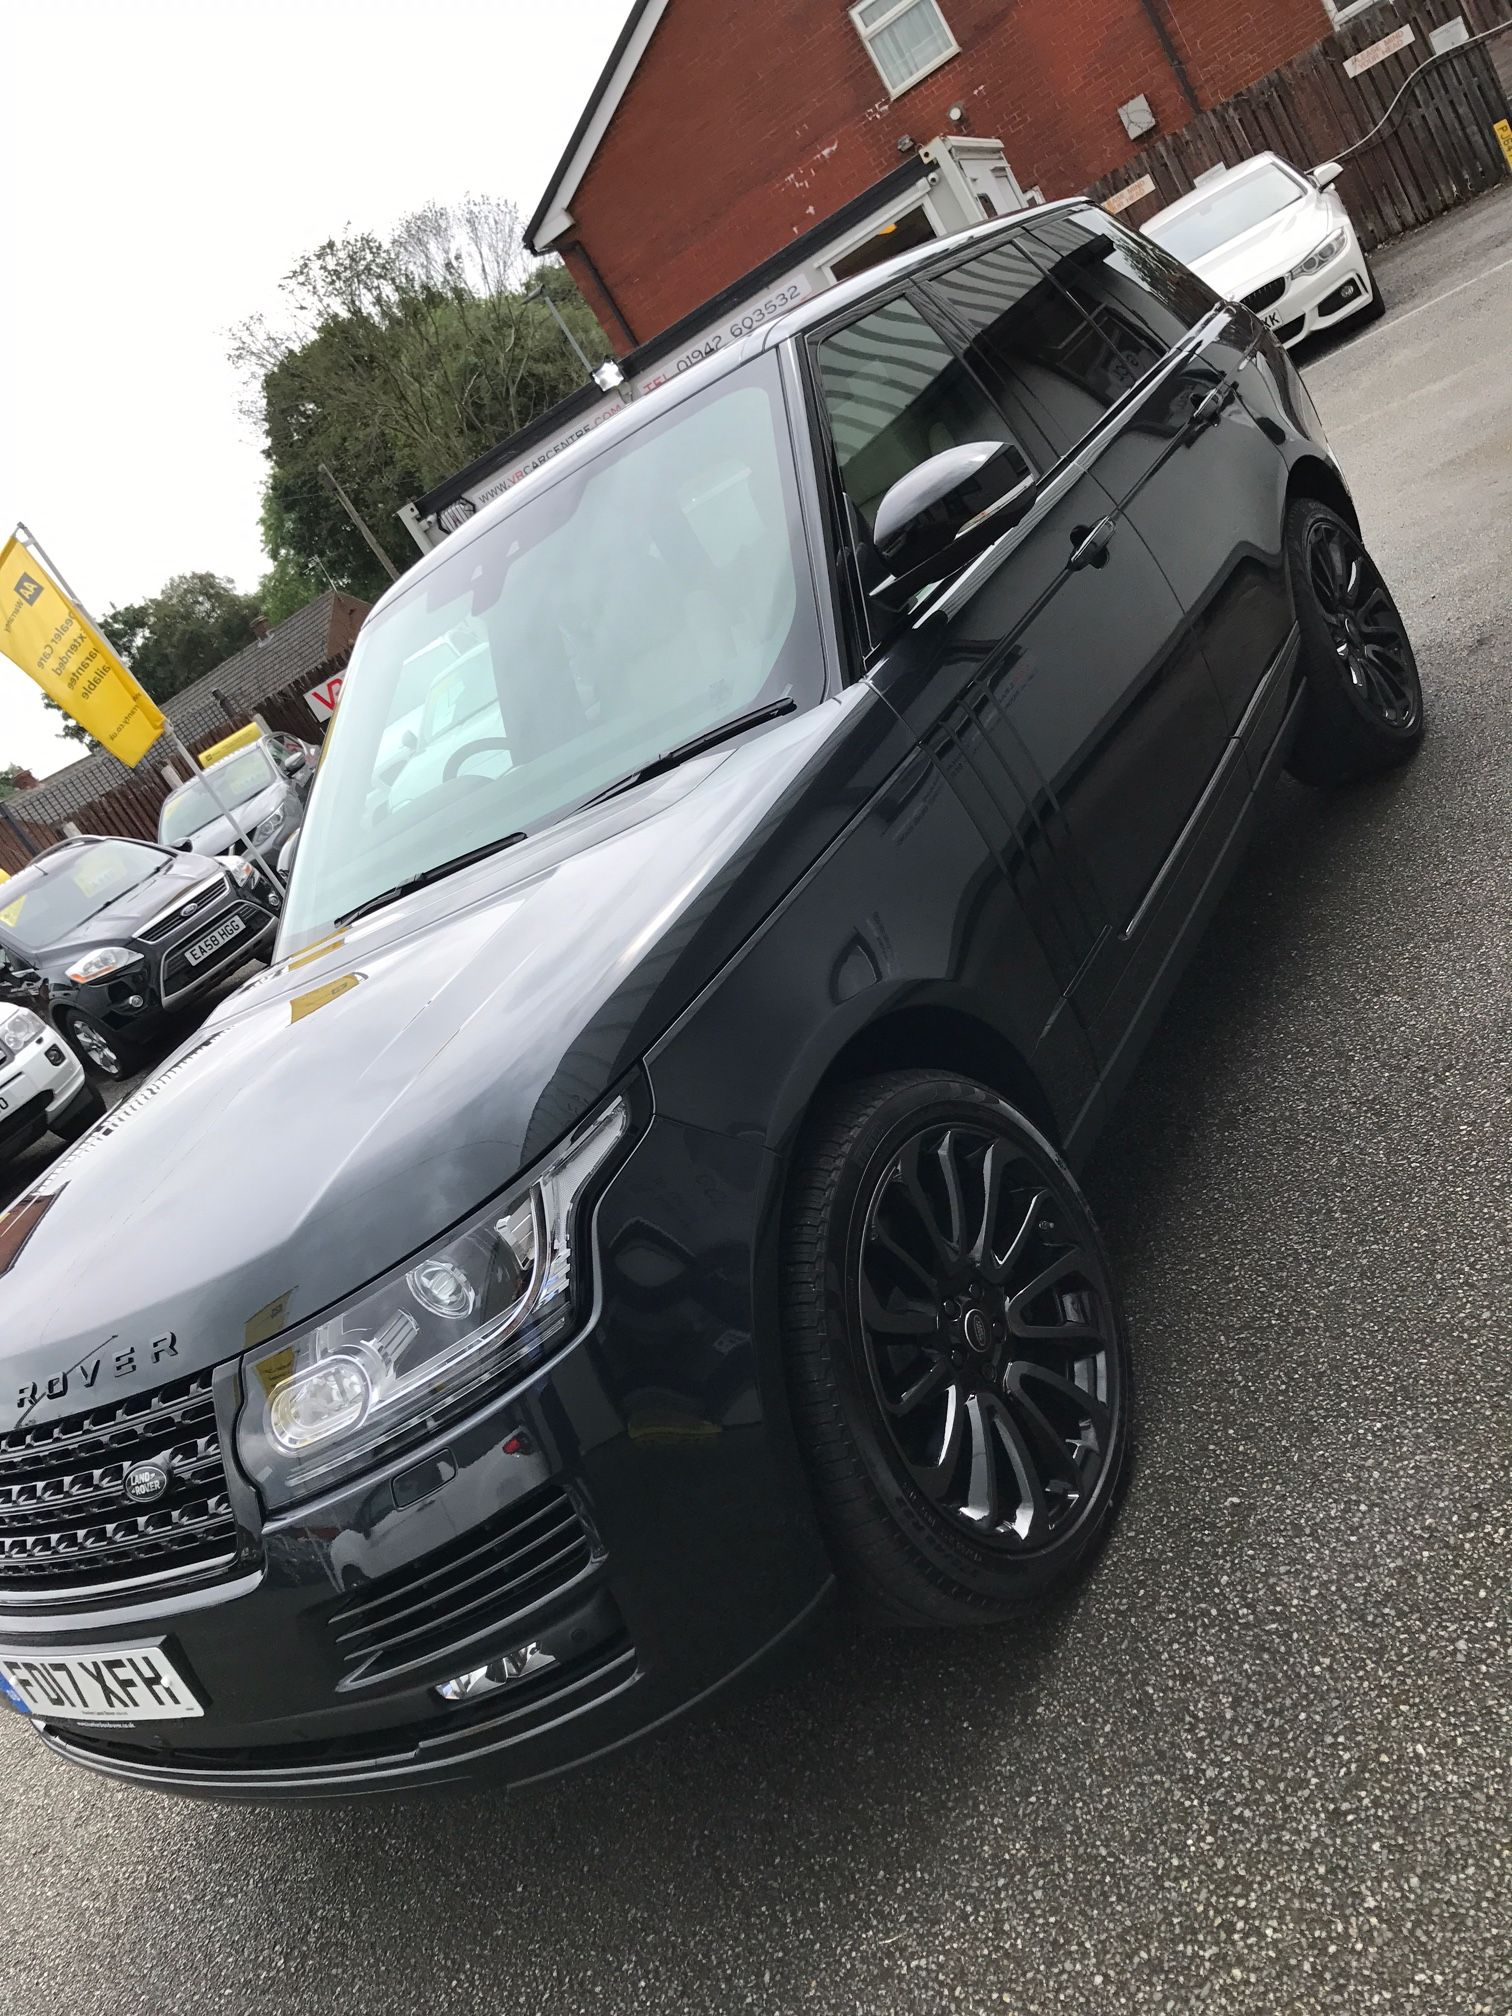 The Range Rover4 4 Sdv8 Autobiography 4dr Auto Carleasing Luxury Range Rover Supercharged Car Lease Land Rover